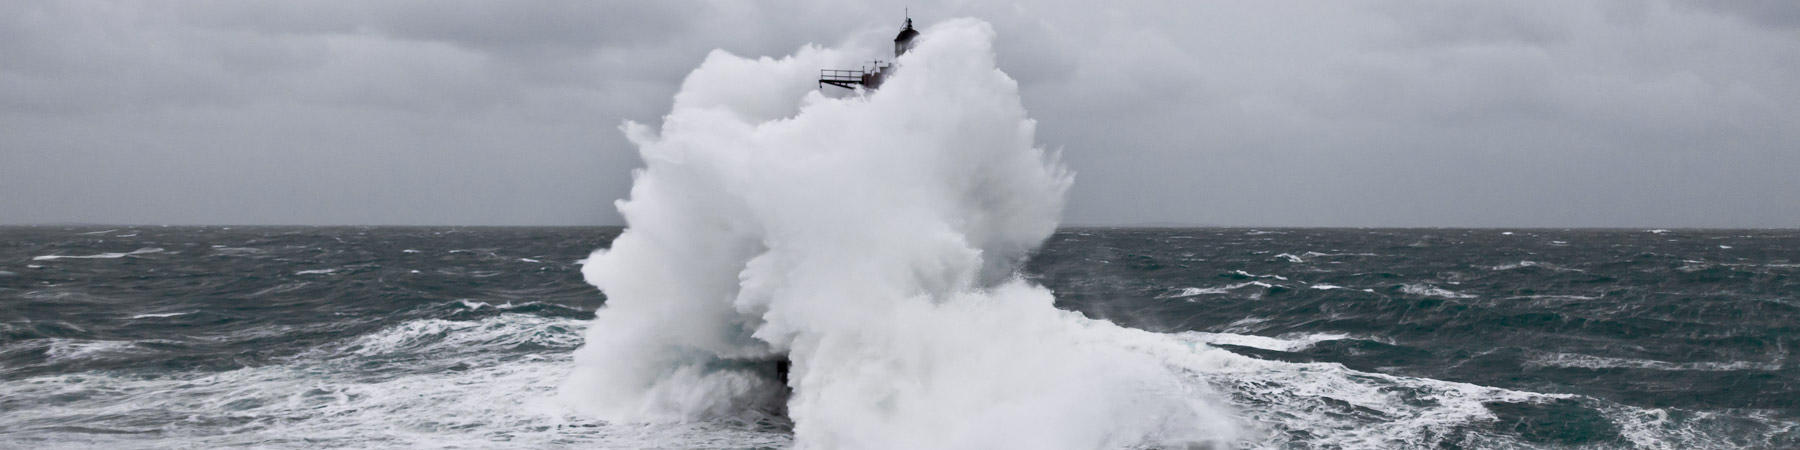 Winters storms on Brittany coasts - Photo Pêcheur d'Images